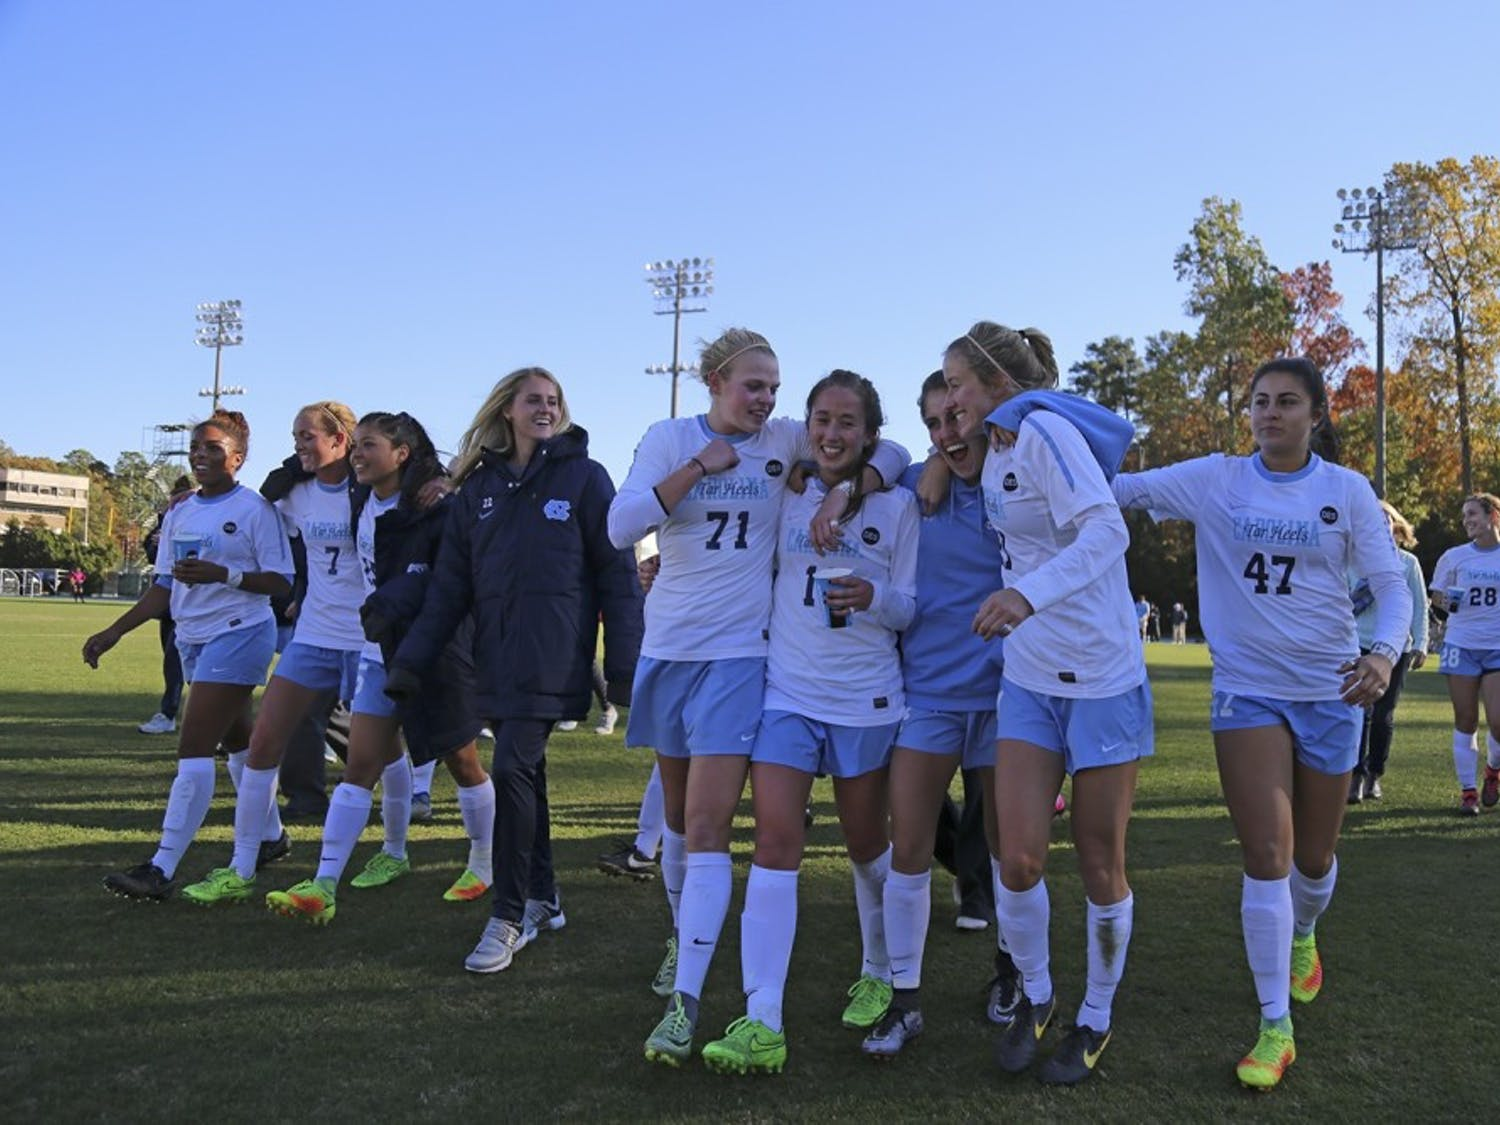 The North Carolina women's soccer team walks off the field in joy after defeating Clemson, 1-0, in the third round of the 2016 NCAA Tournament.